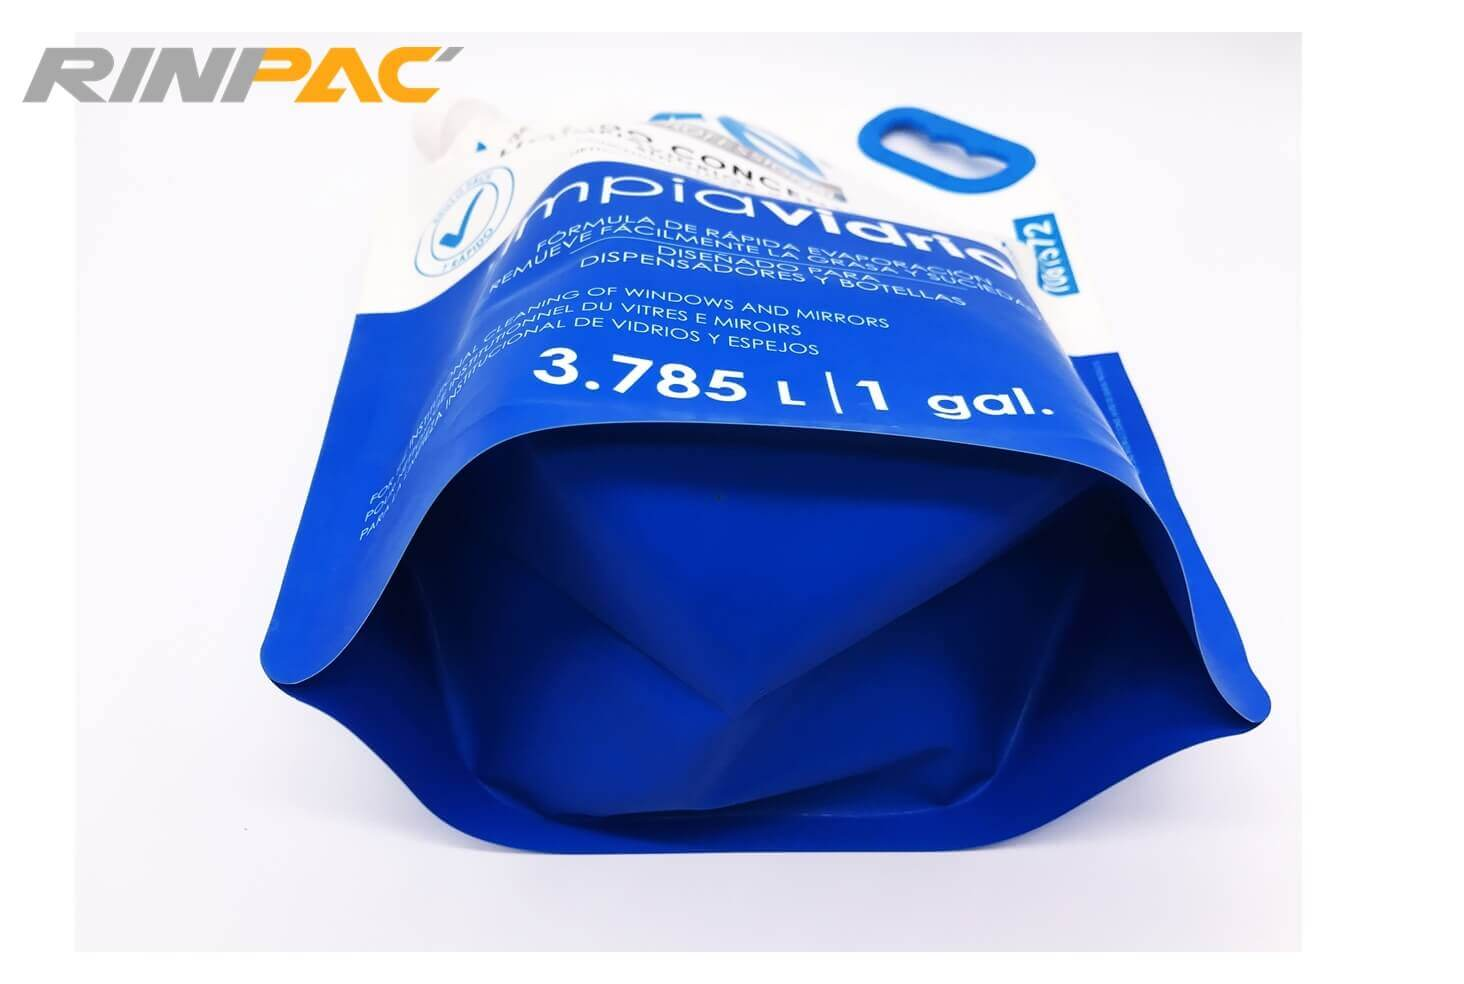 RinPAC Spouted Pouches 2 - Spouted Pouches